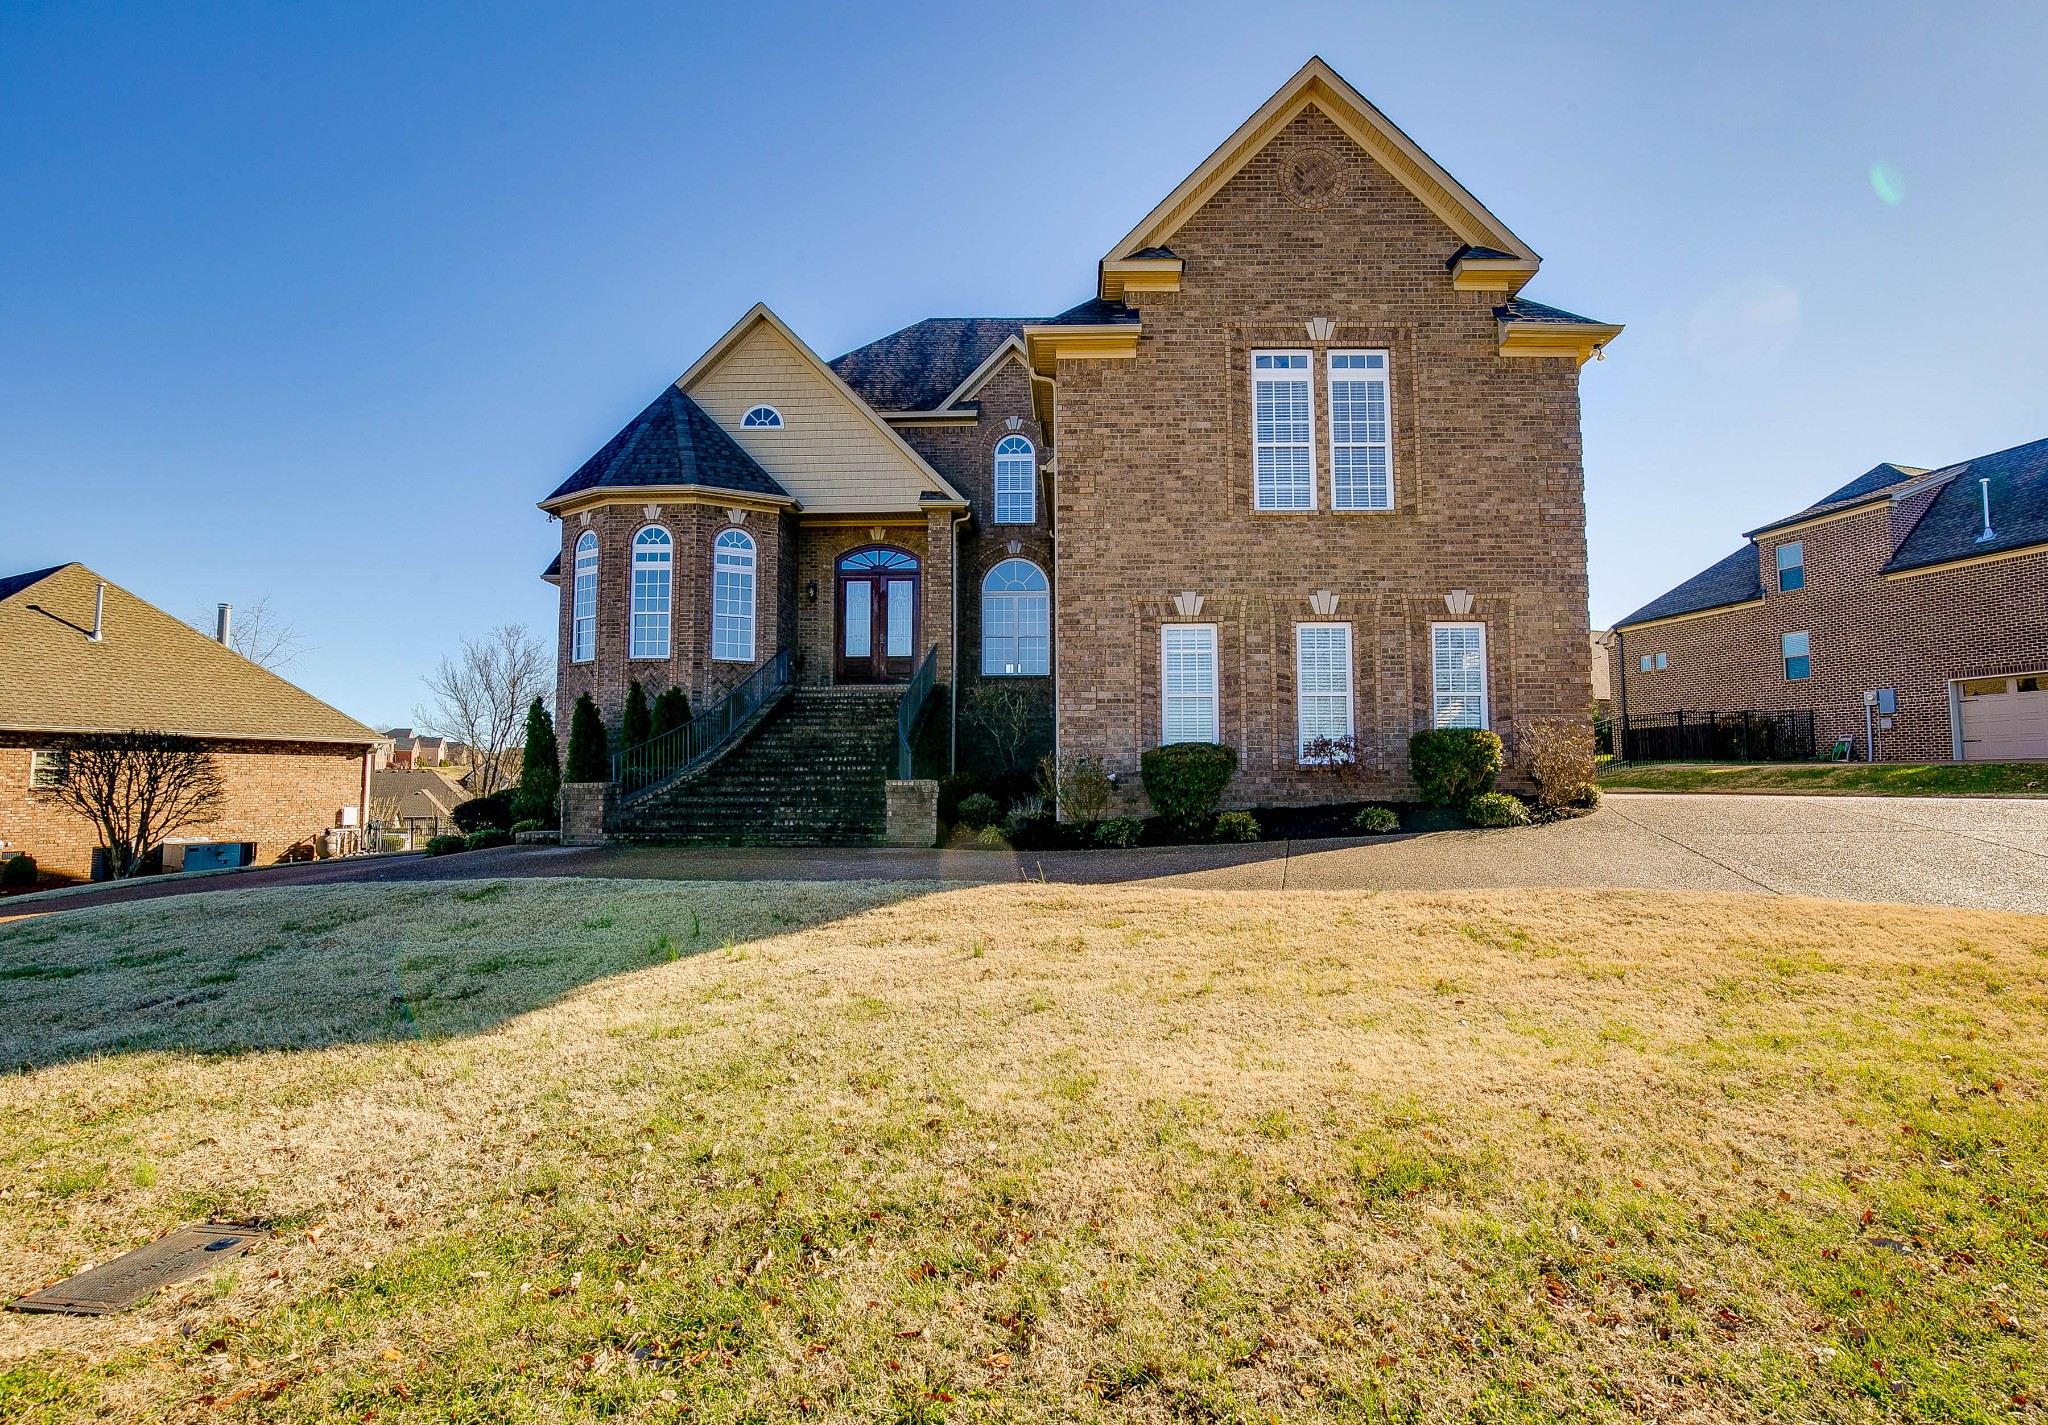 1553 Stokely Ln, Old Hickory, TN 37138 - Old Hickory, TN real estate listing